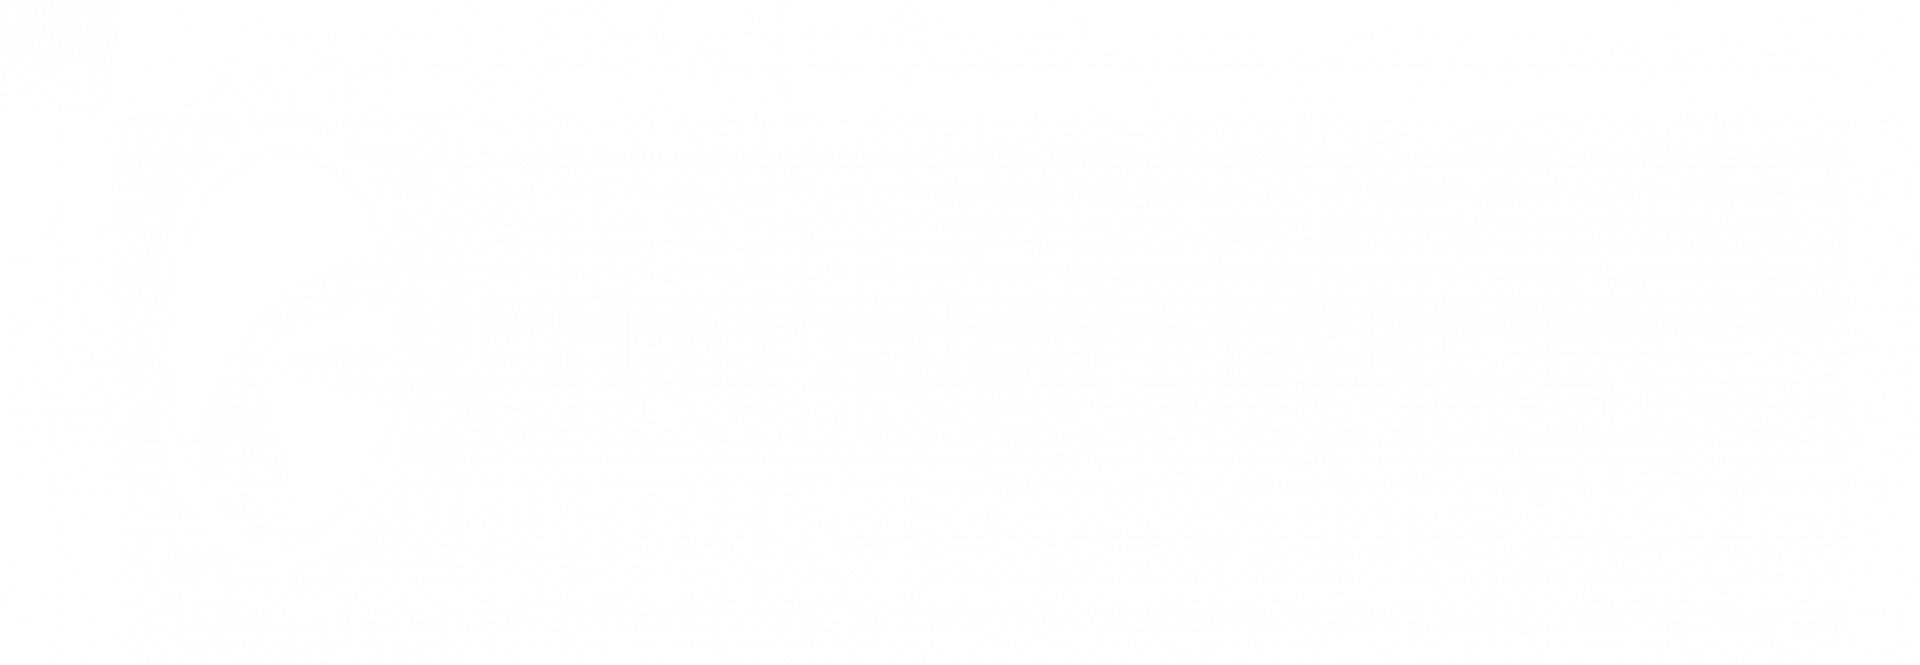 Hair salon FIARCE